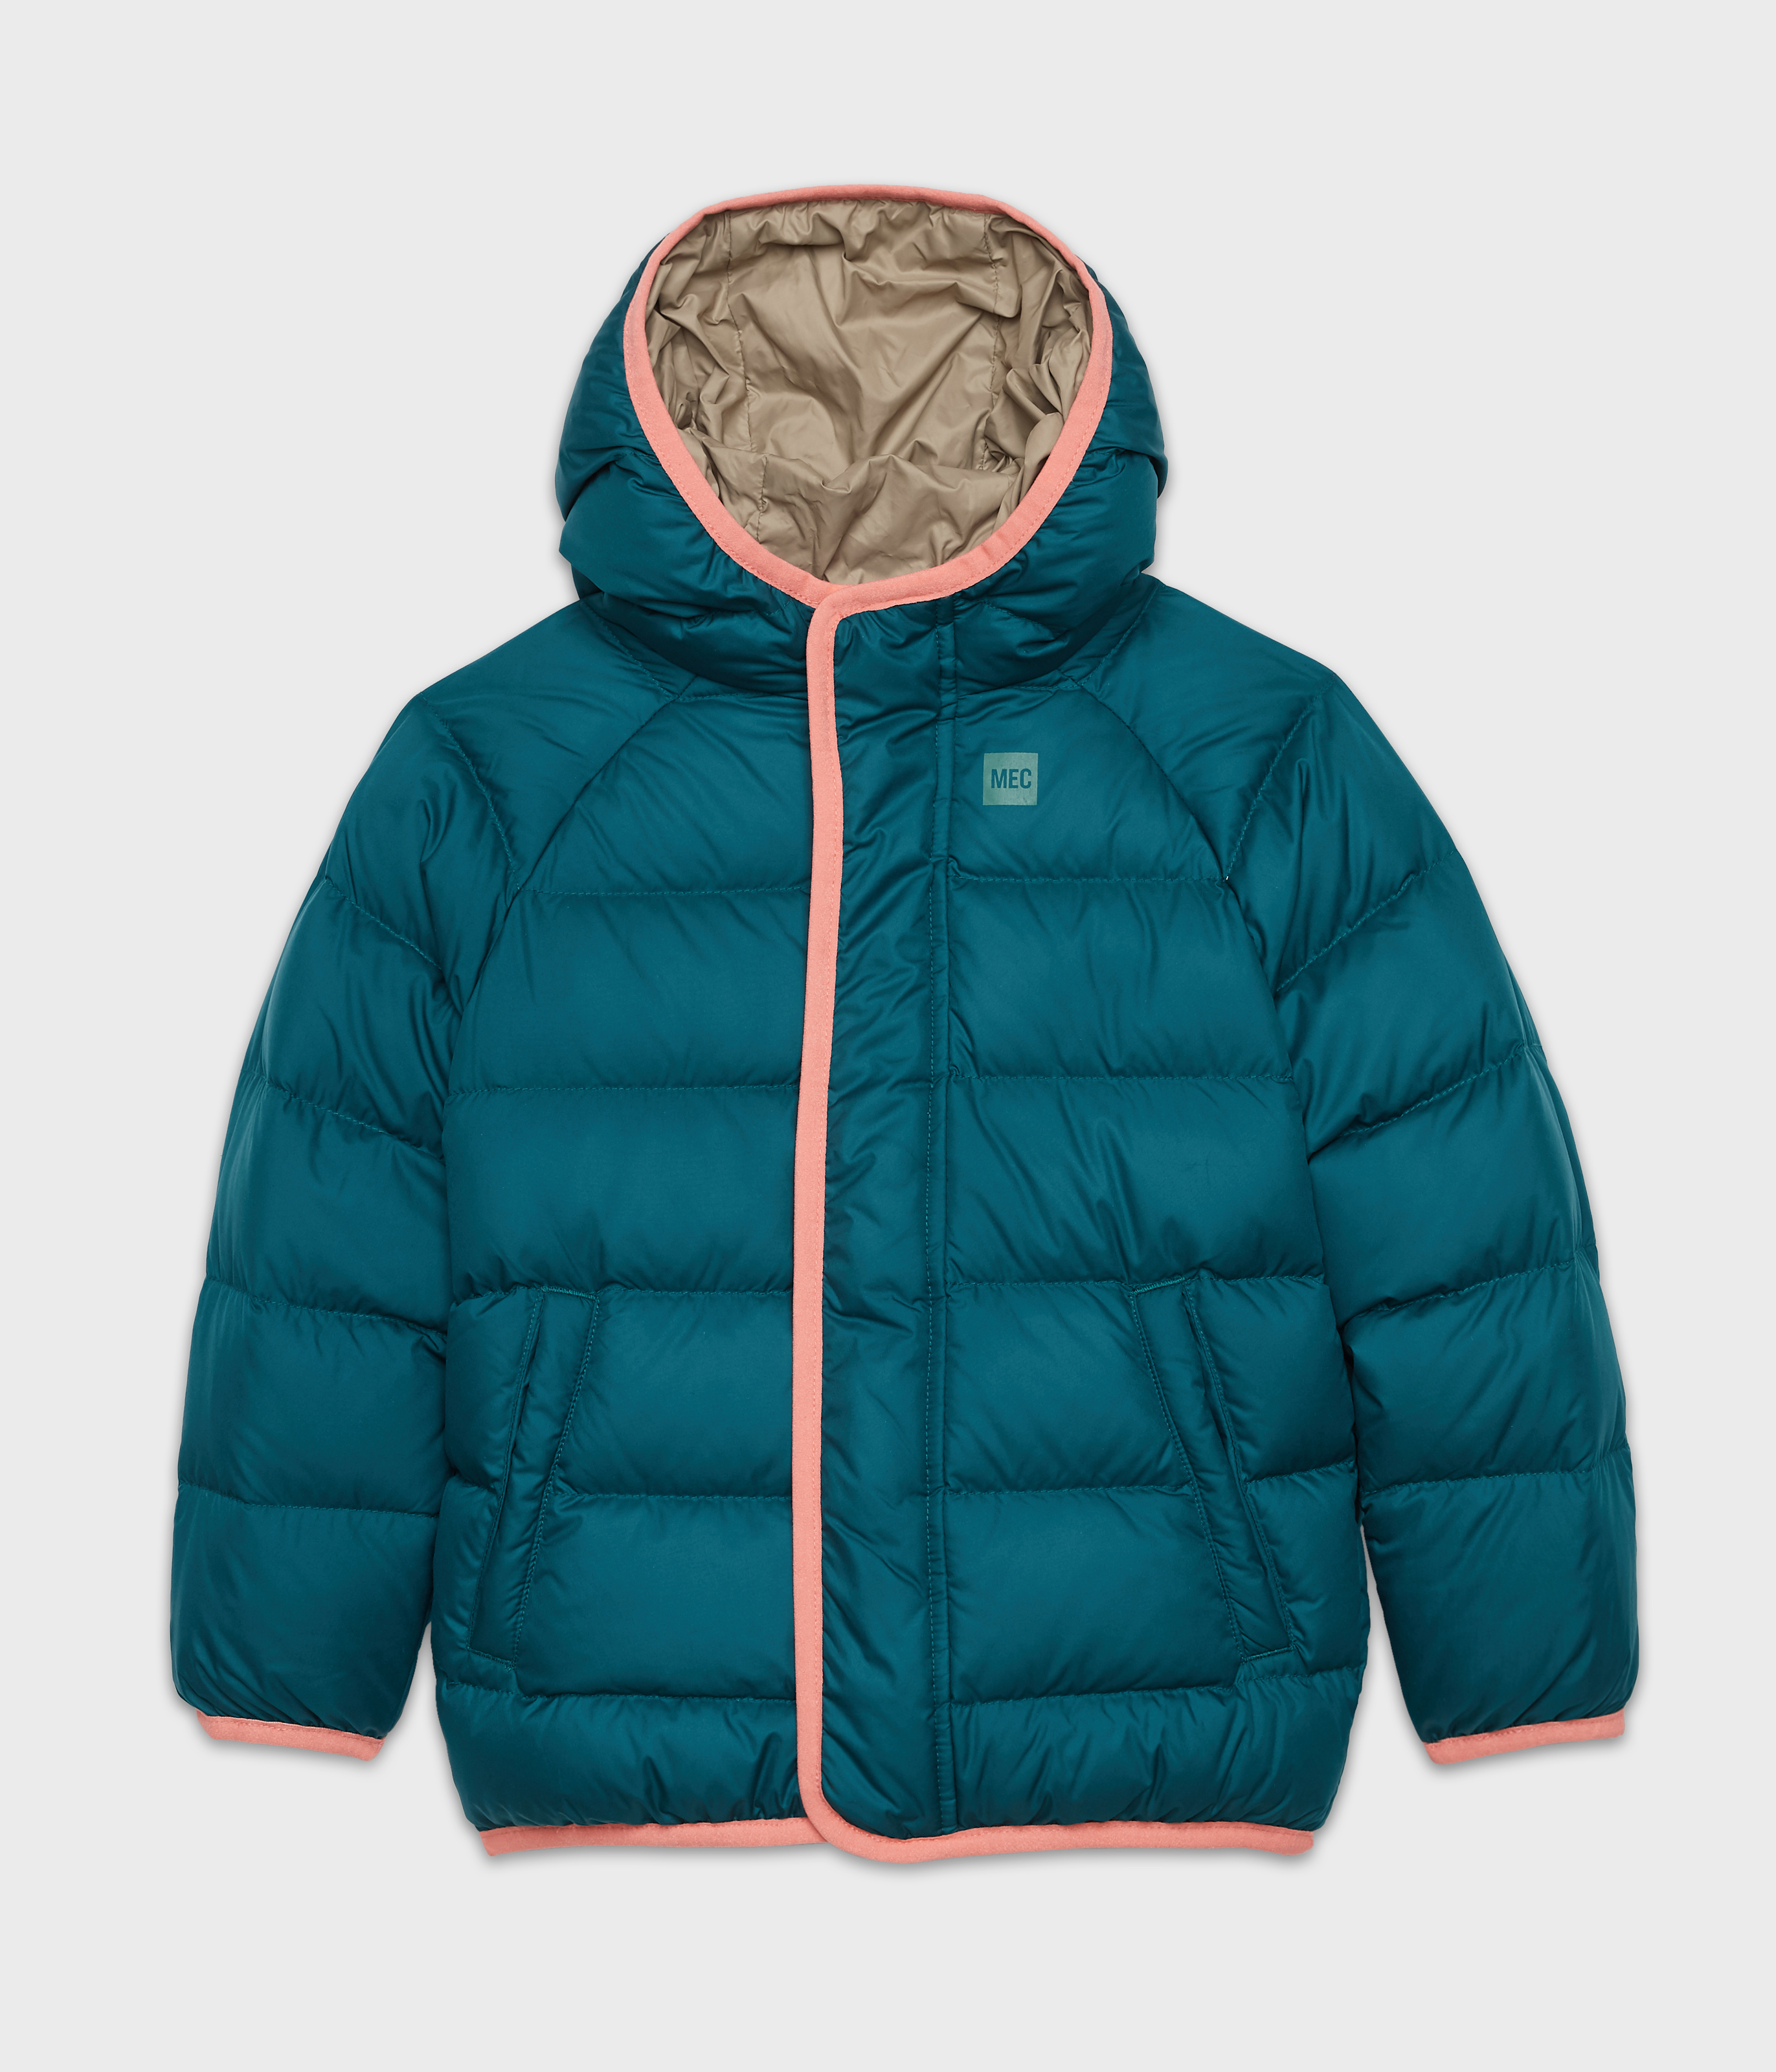 84013a7ae Toddler and child jackets | MEC